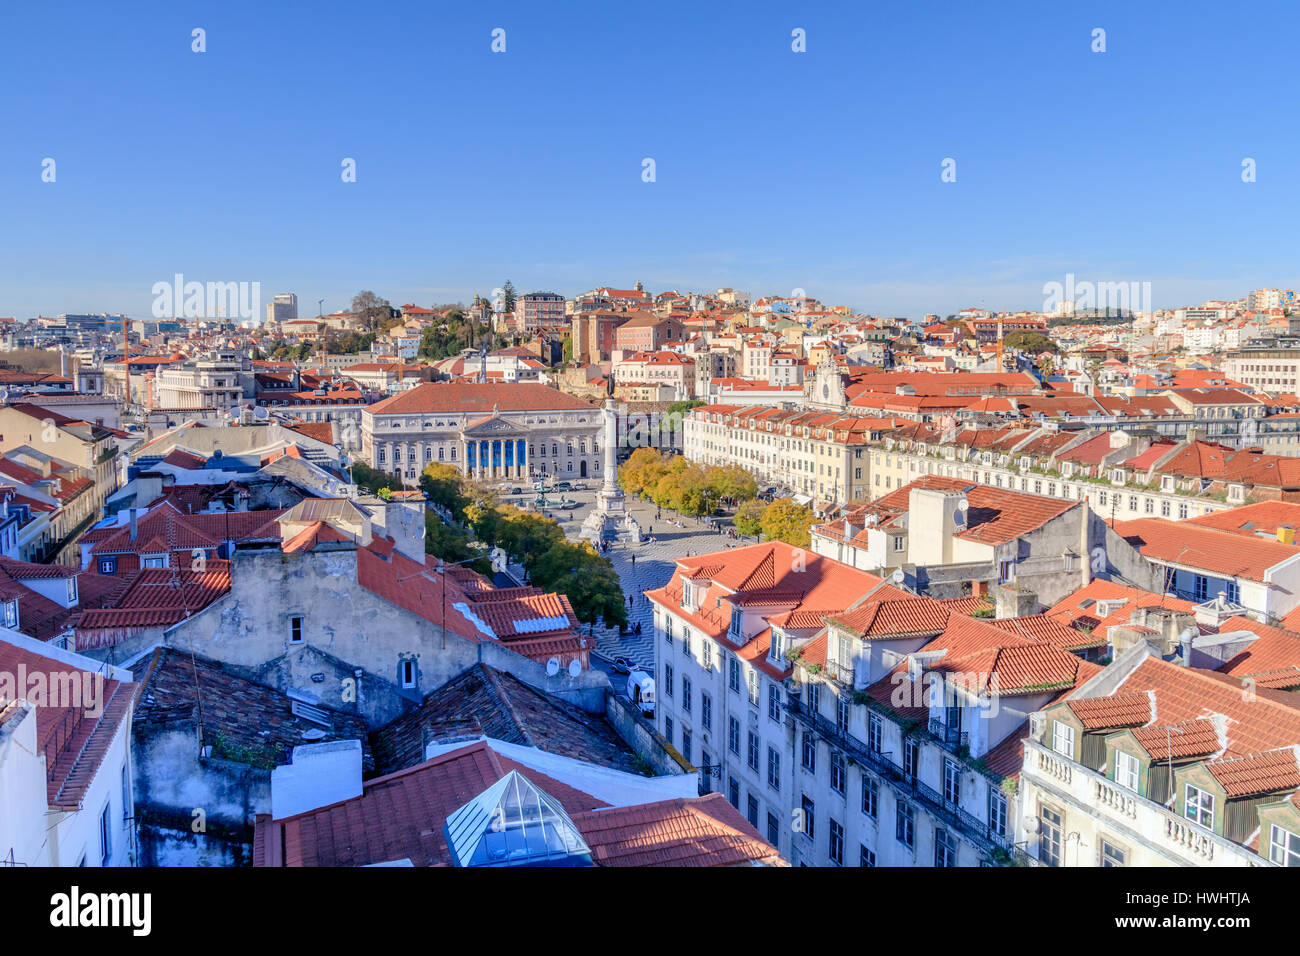 View of central part of Lisbon - Stock Image